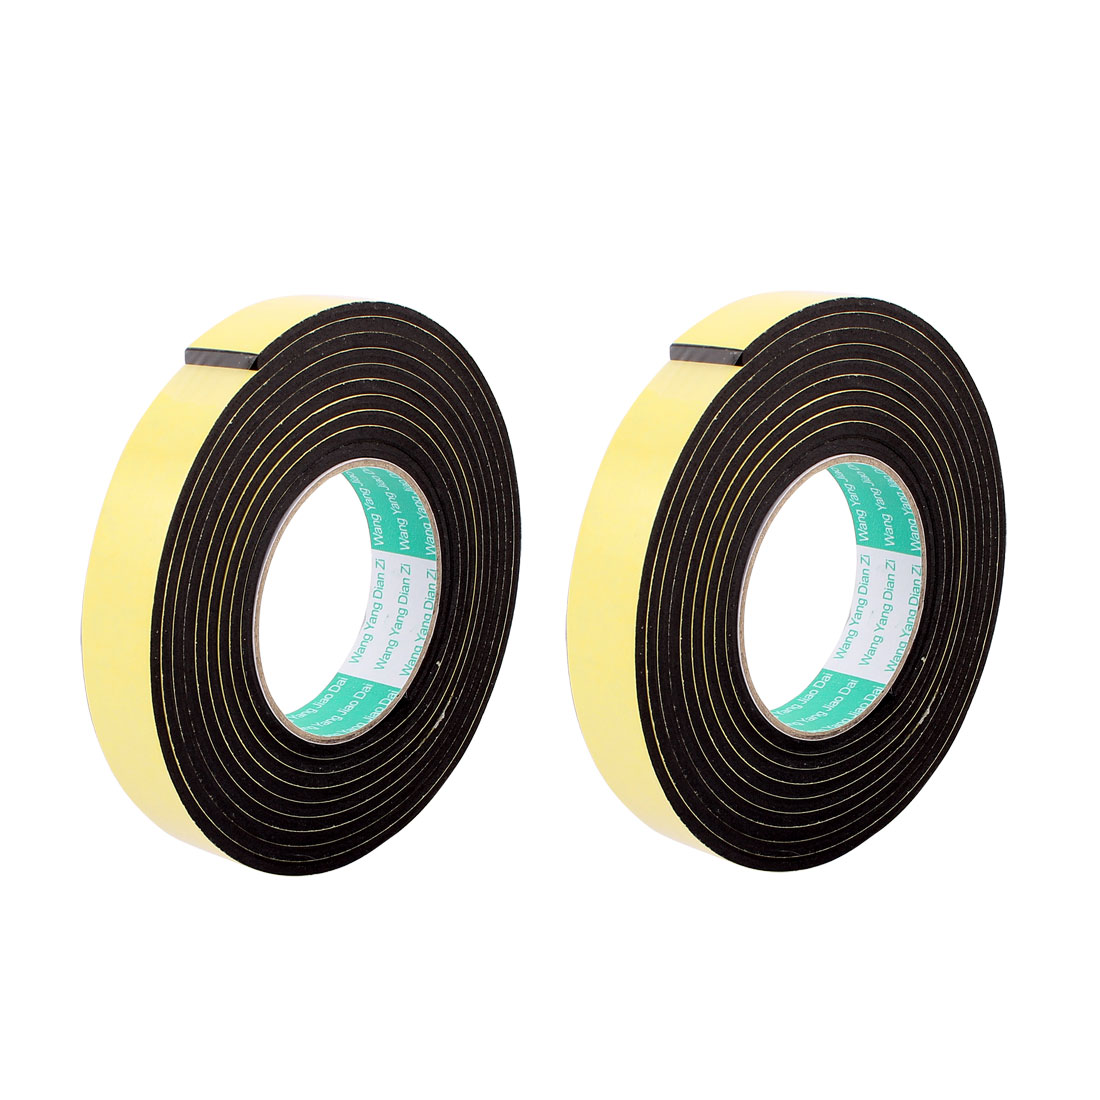 2 Pcs 25mmx4mm Single Sided Sponge Tape Adhesive Sticker Foam Glue Strip Sealing 3 Meters 10Ft